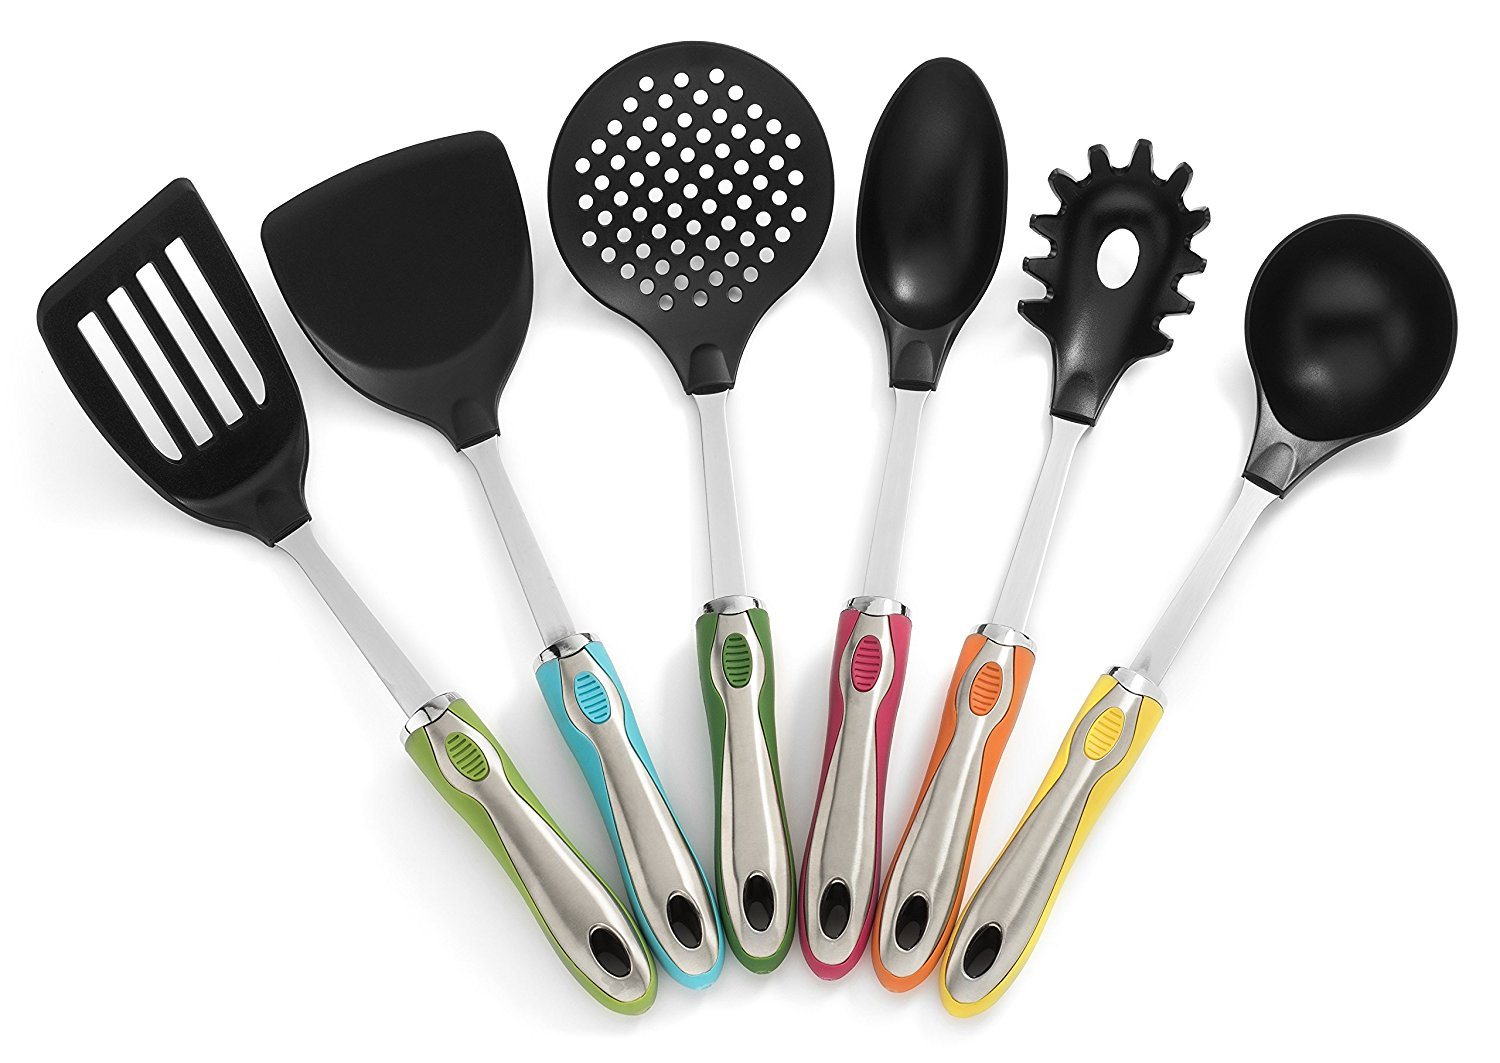 Etonnant Kitchen Utensils With Holder 7 Pc Cute Utensil Set U2013 Colorful Handles,  Stainless Steel Core And Large Nylon Heads By RSG U2013 Party Supply Factory